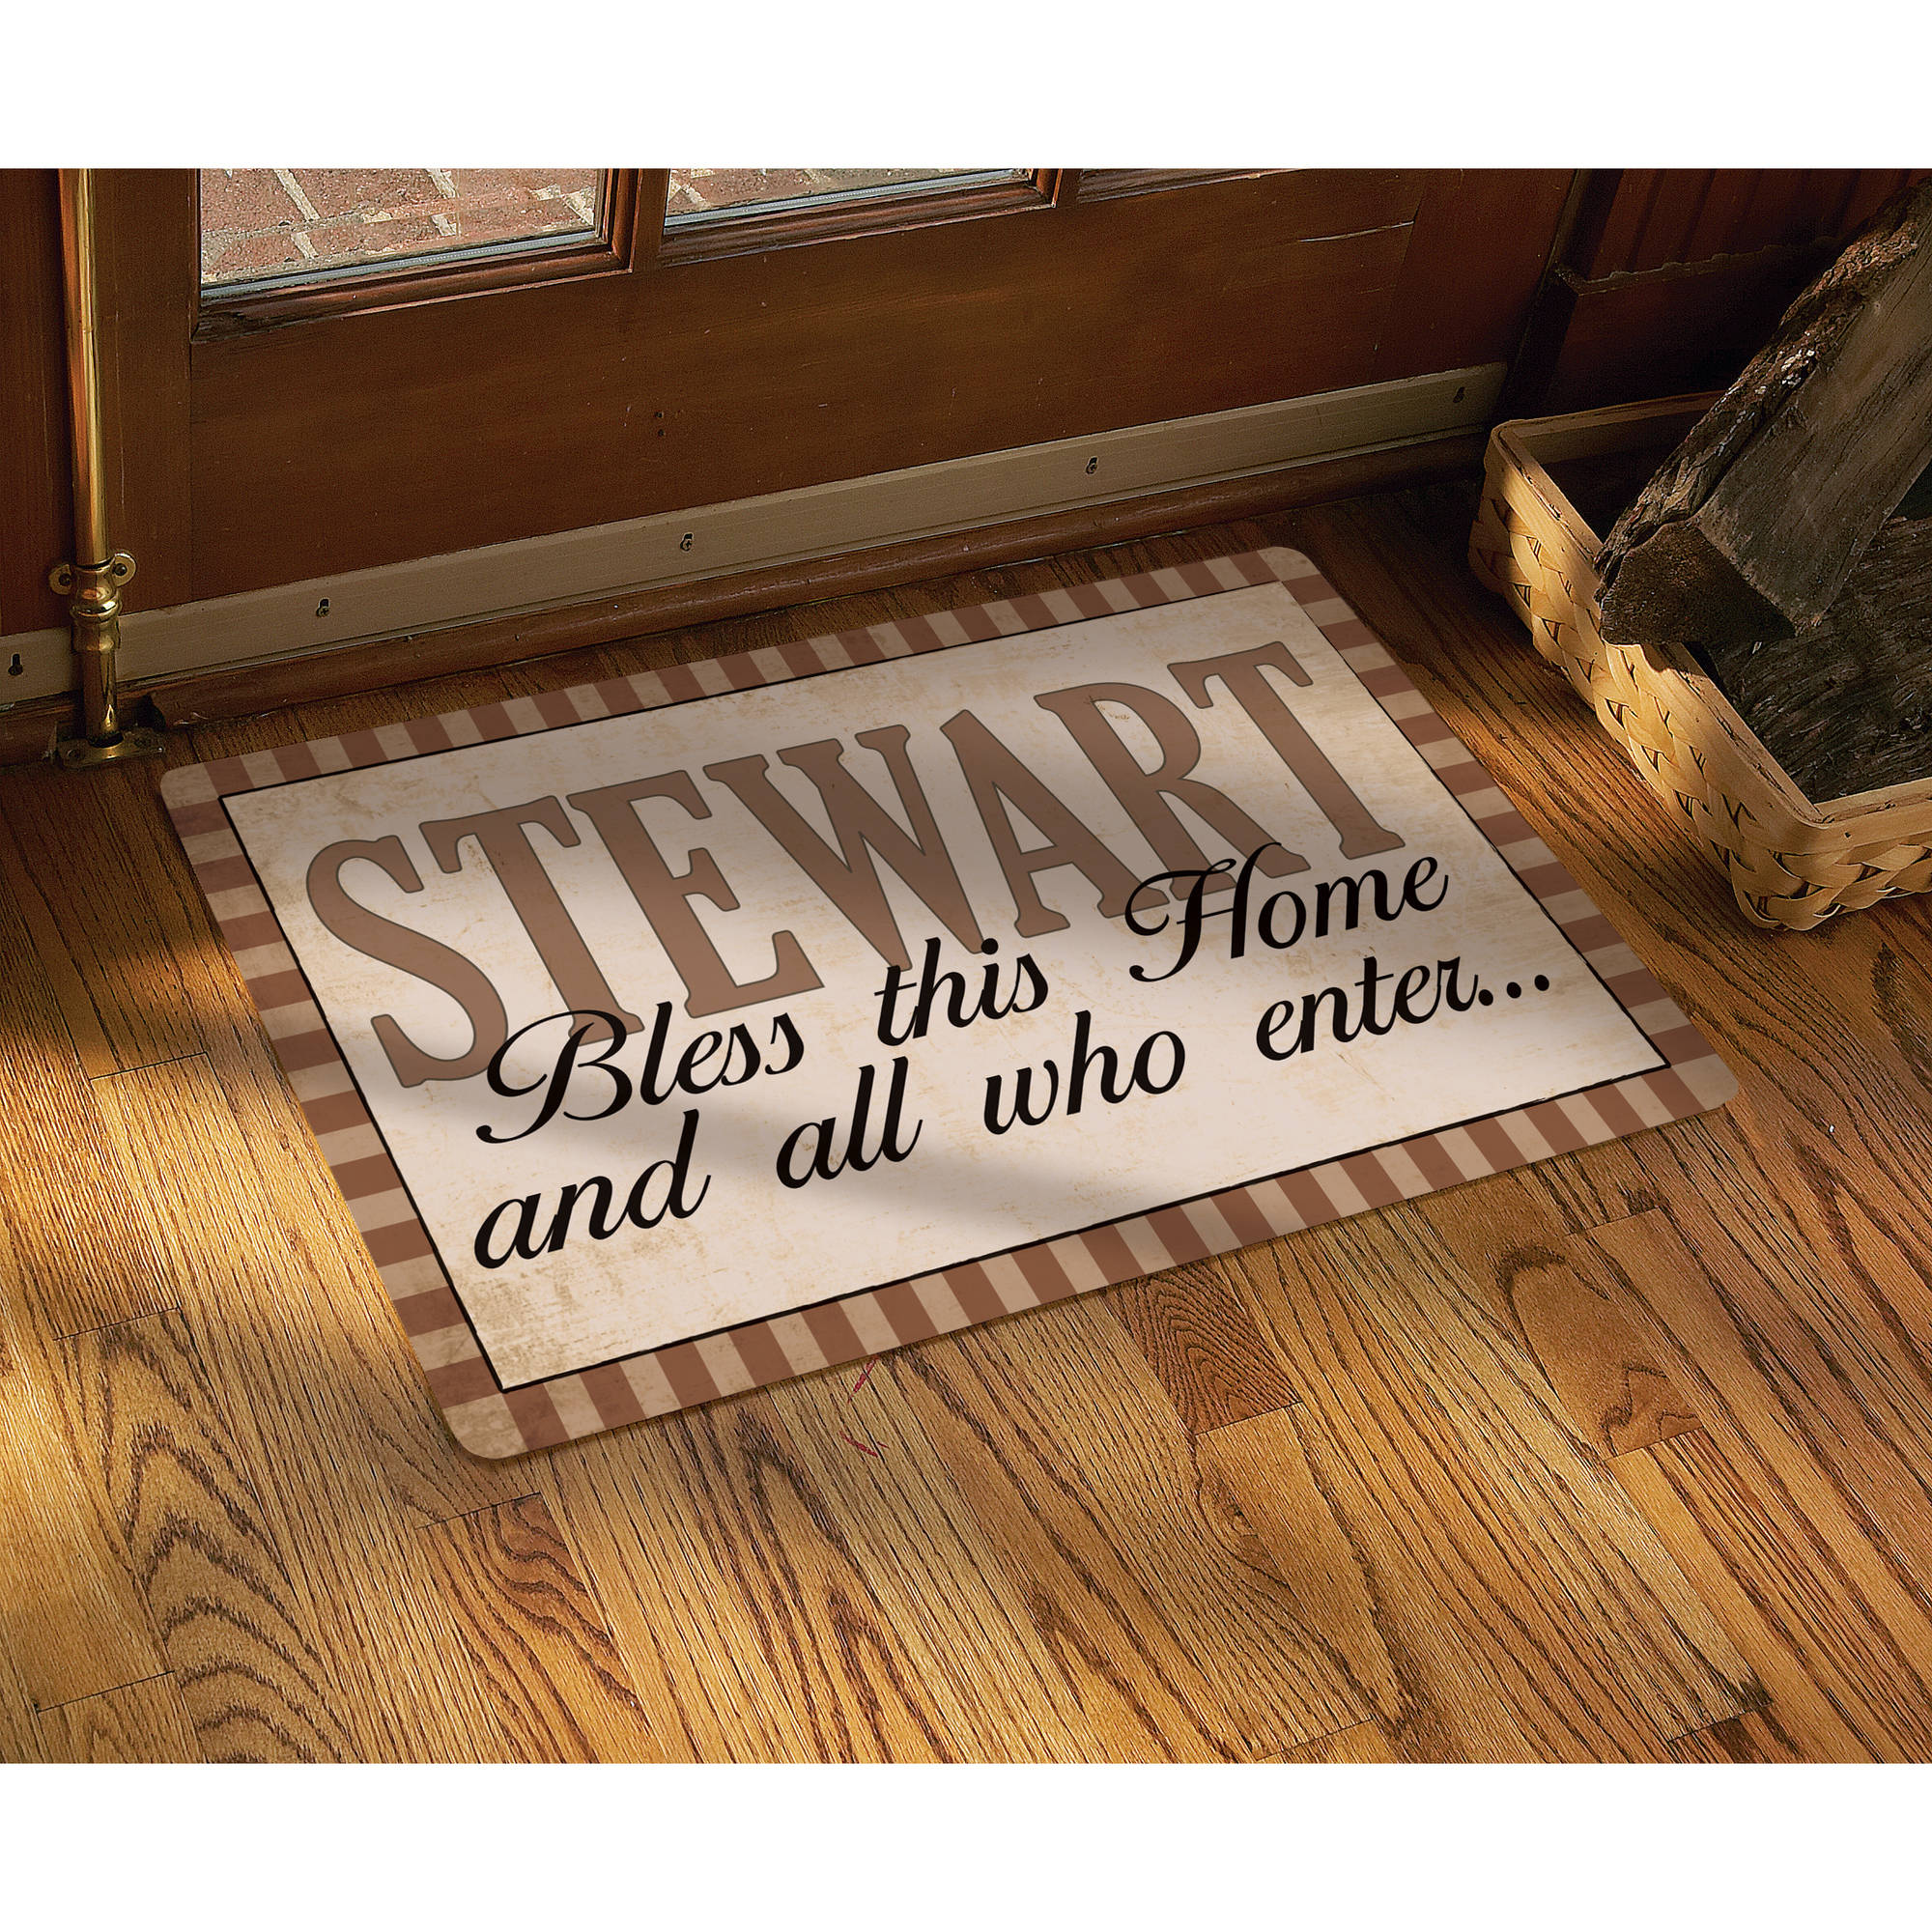 """Personalized """"Rustic Bless All Who Enter"""" Doormat, 17"""" x 27"""", Multiple Colors"""